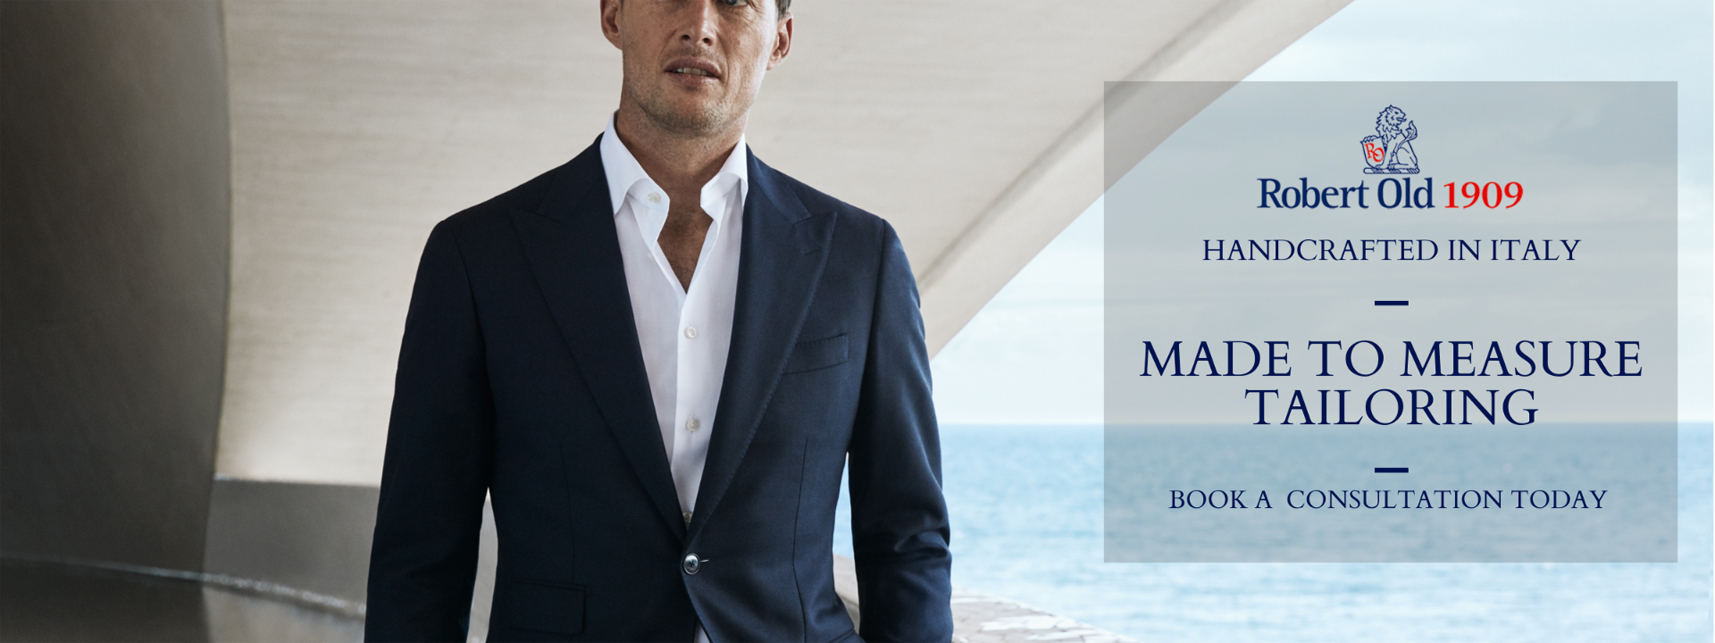 Made_to_measure_tailoring